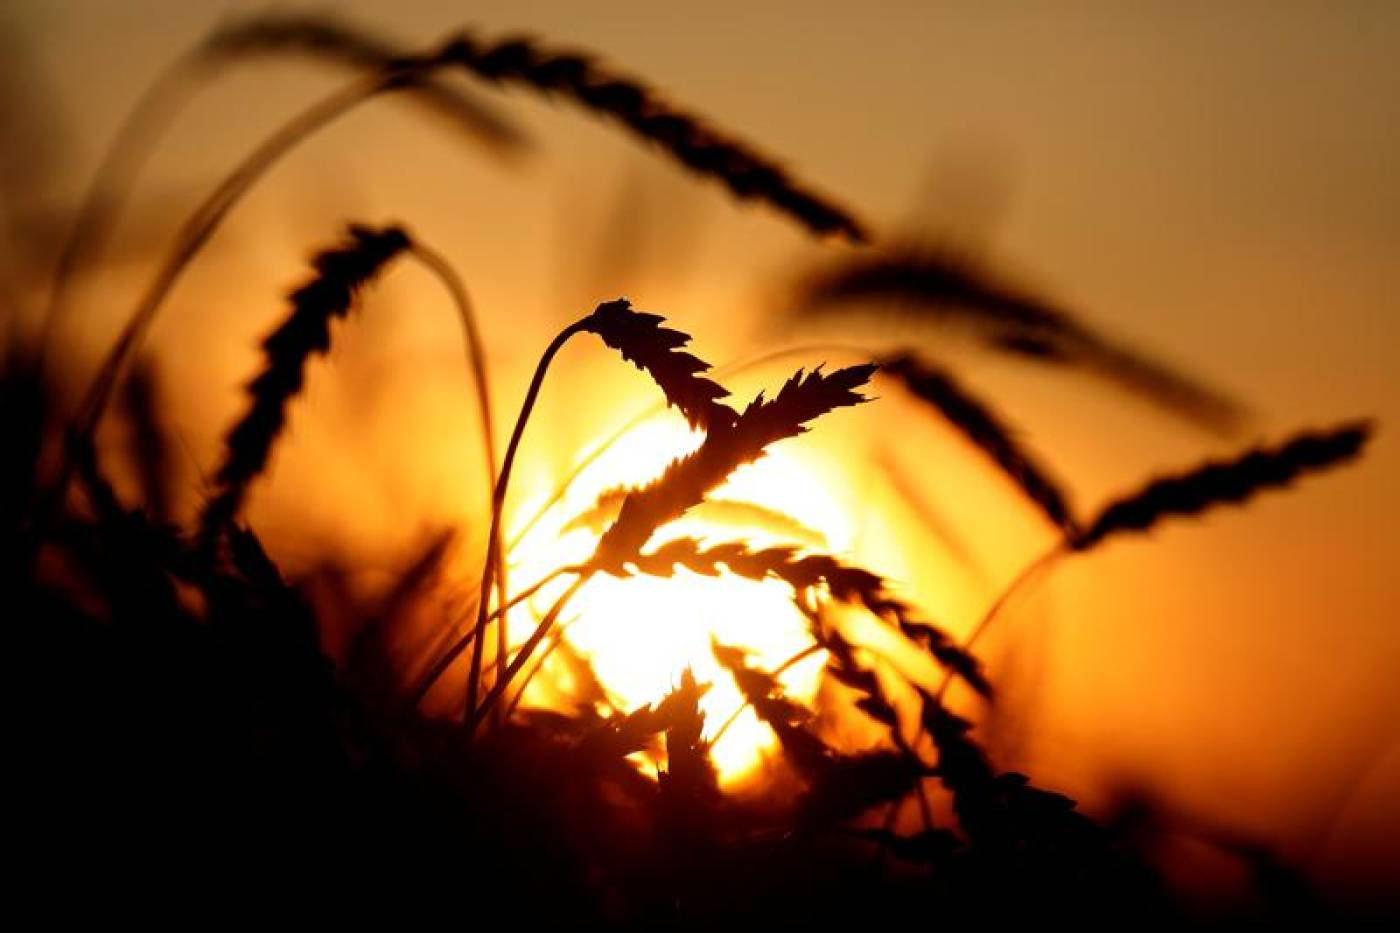 Fifth of world's calories threatened as climate scientists sound alarm over wheat